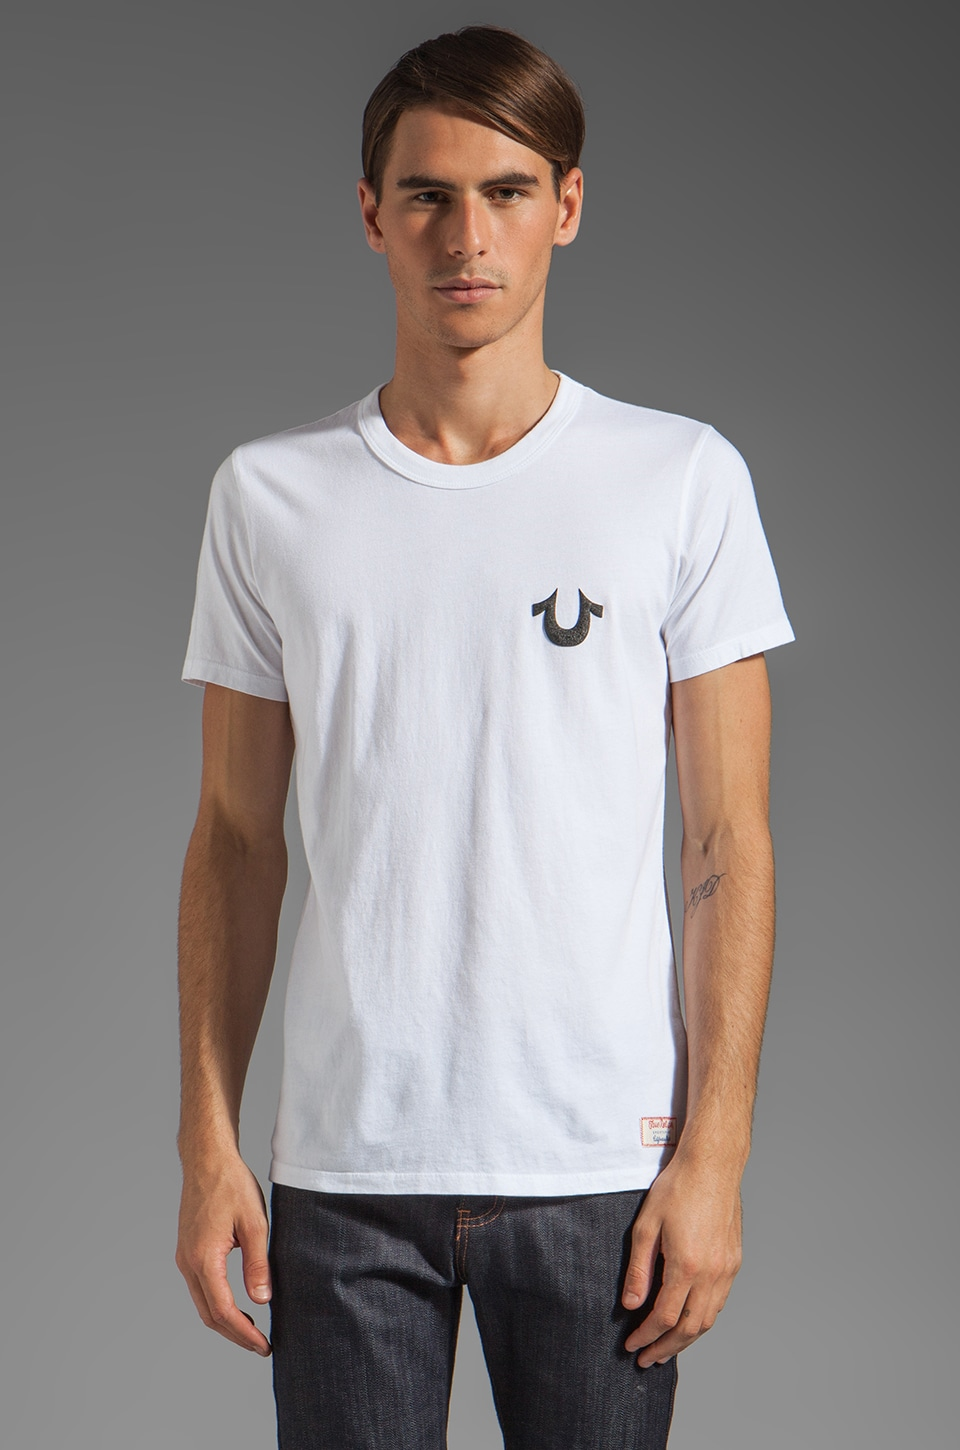 True Religion Puff Tee in White/Black